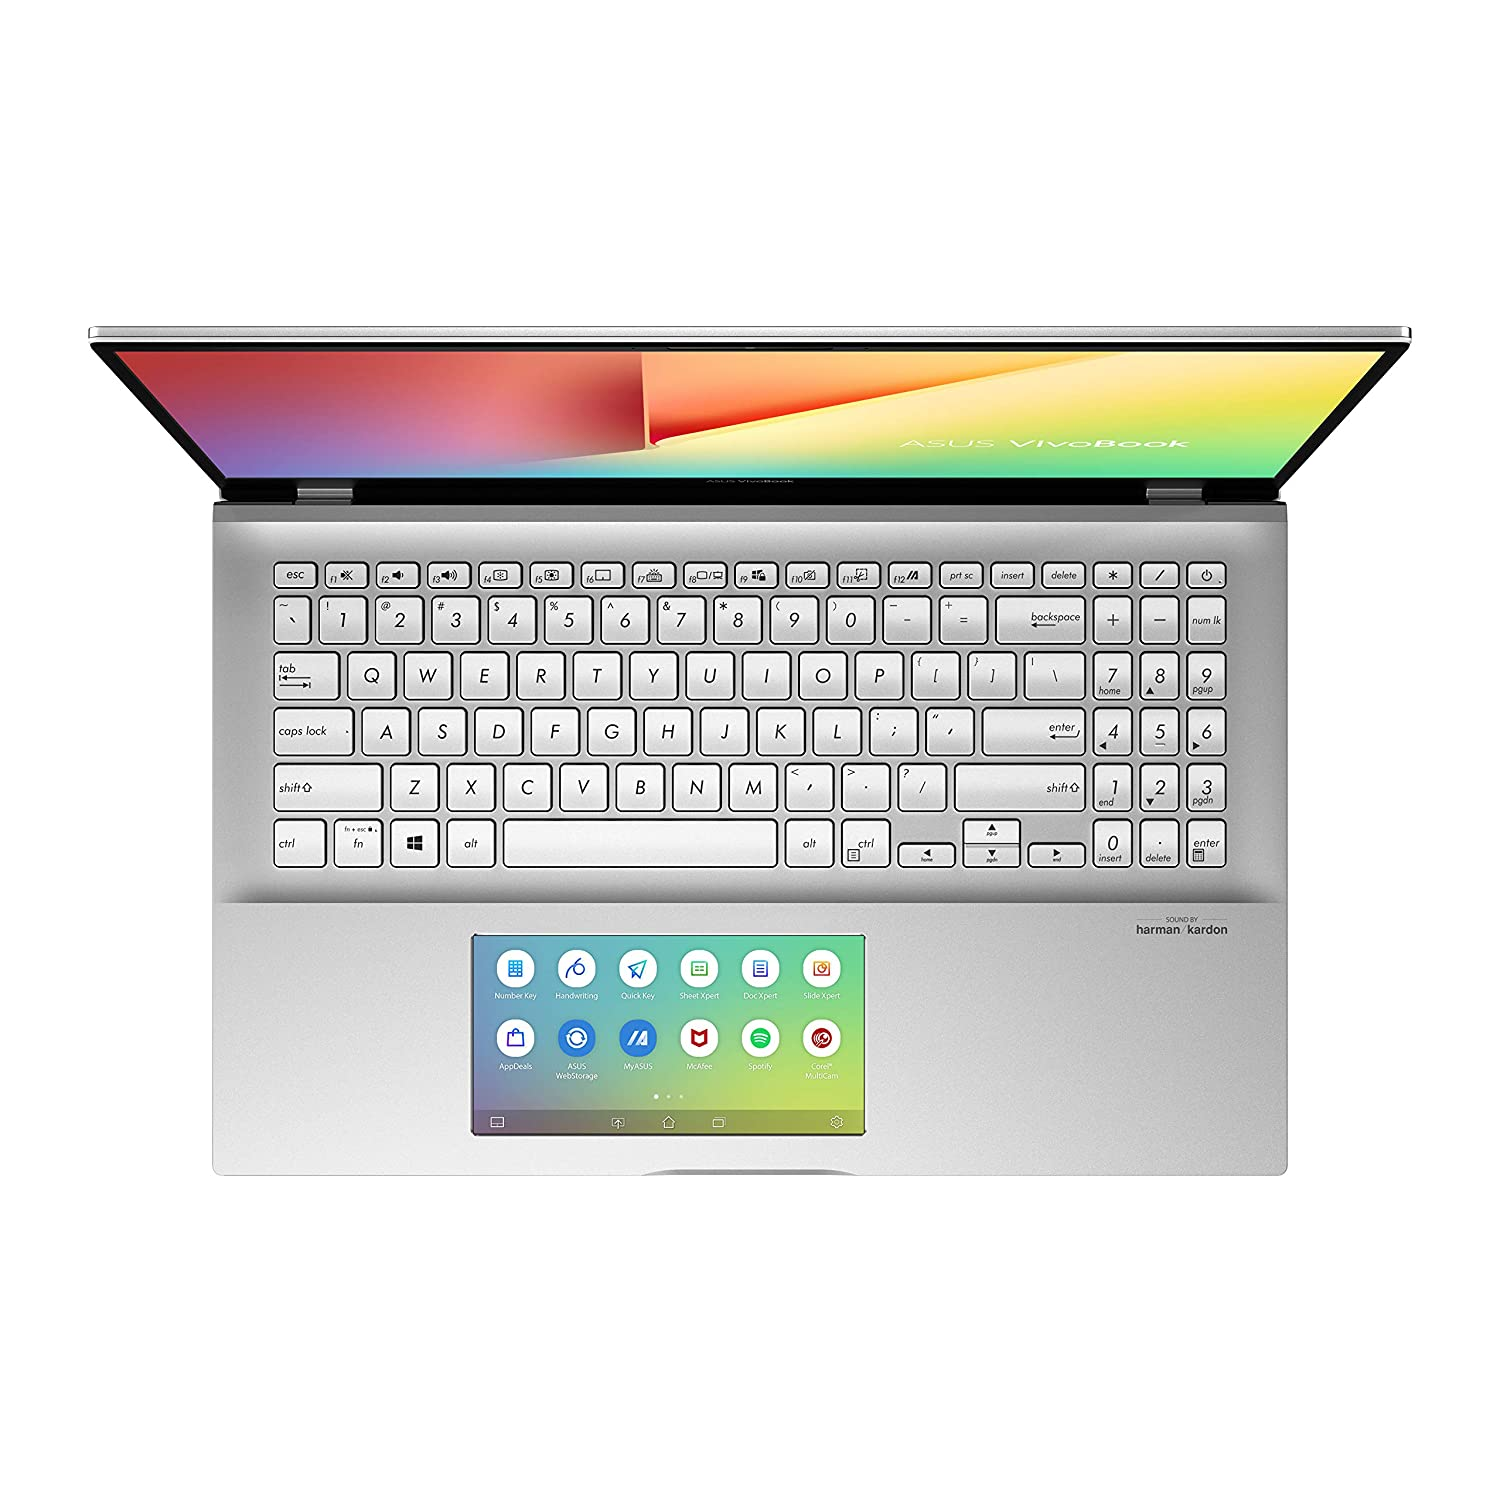 Best Laptop For College Students In India 2021